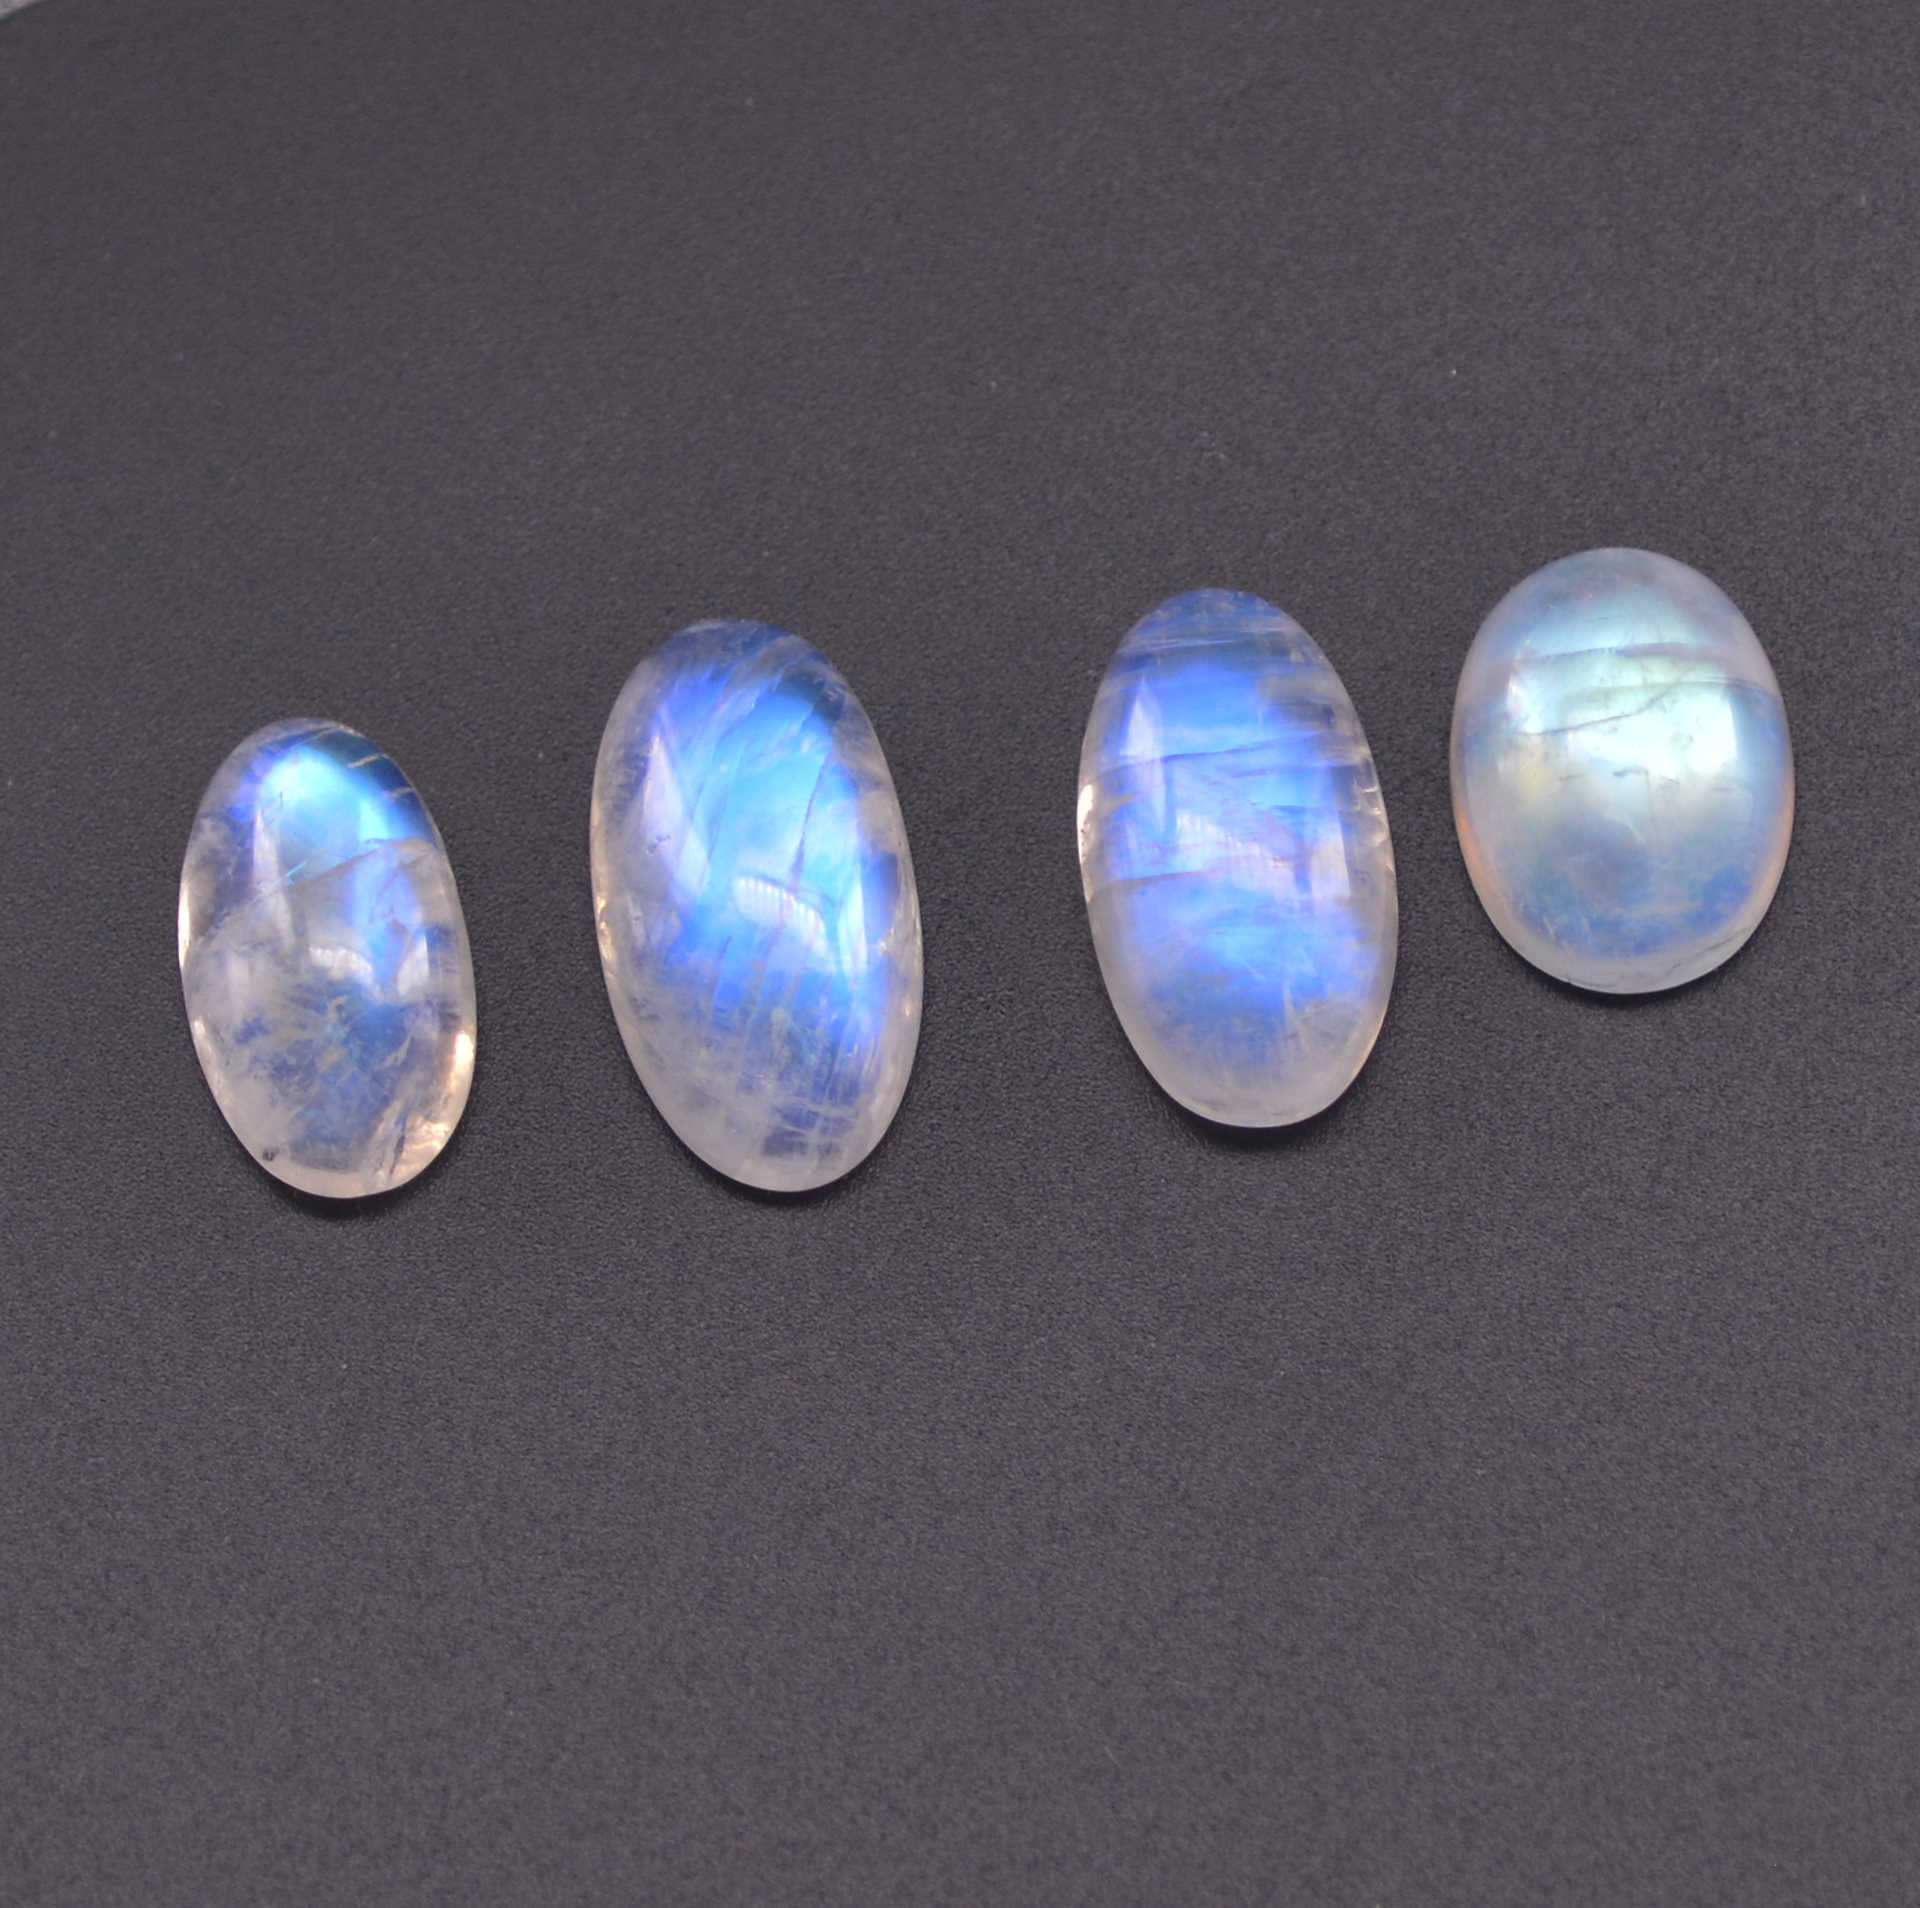 3 Pieces Natural Rainbow Moonstone Cabochons Lot 13x17mm to 11x19mm Oval Shape White Moonstone Gemstones Cab Loose Stones Smooth Gems Cabs